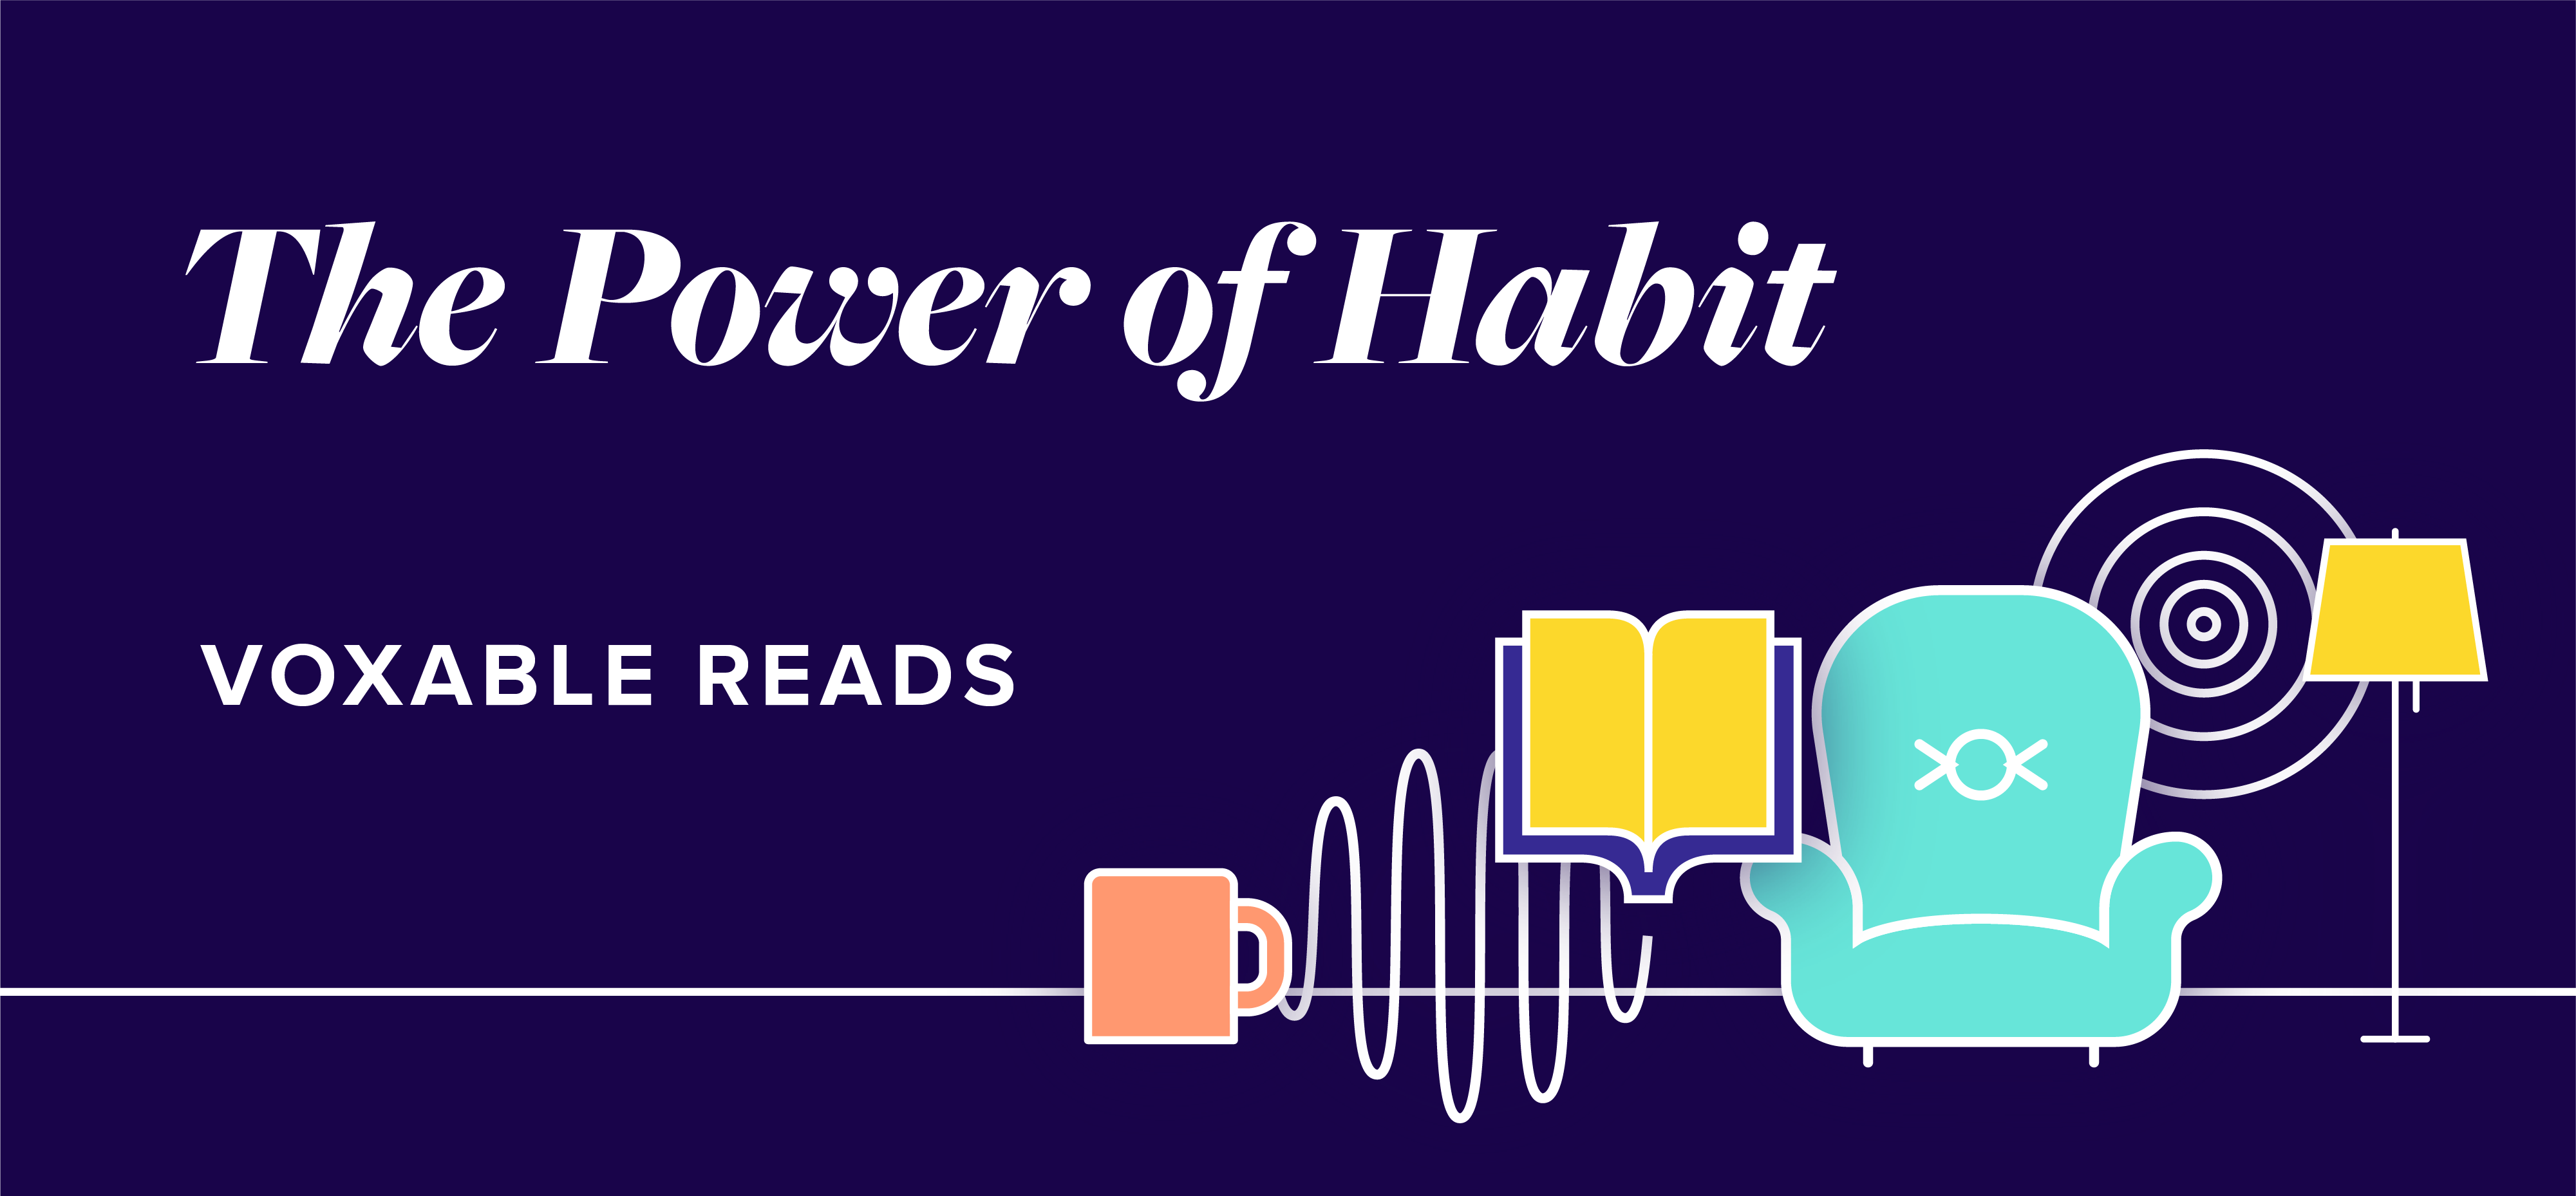 Website banners the power of habit